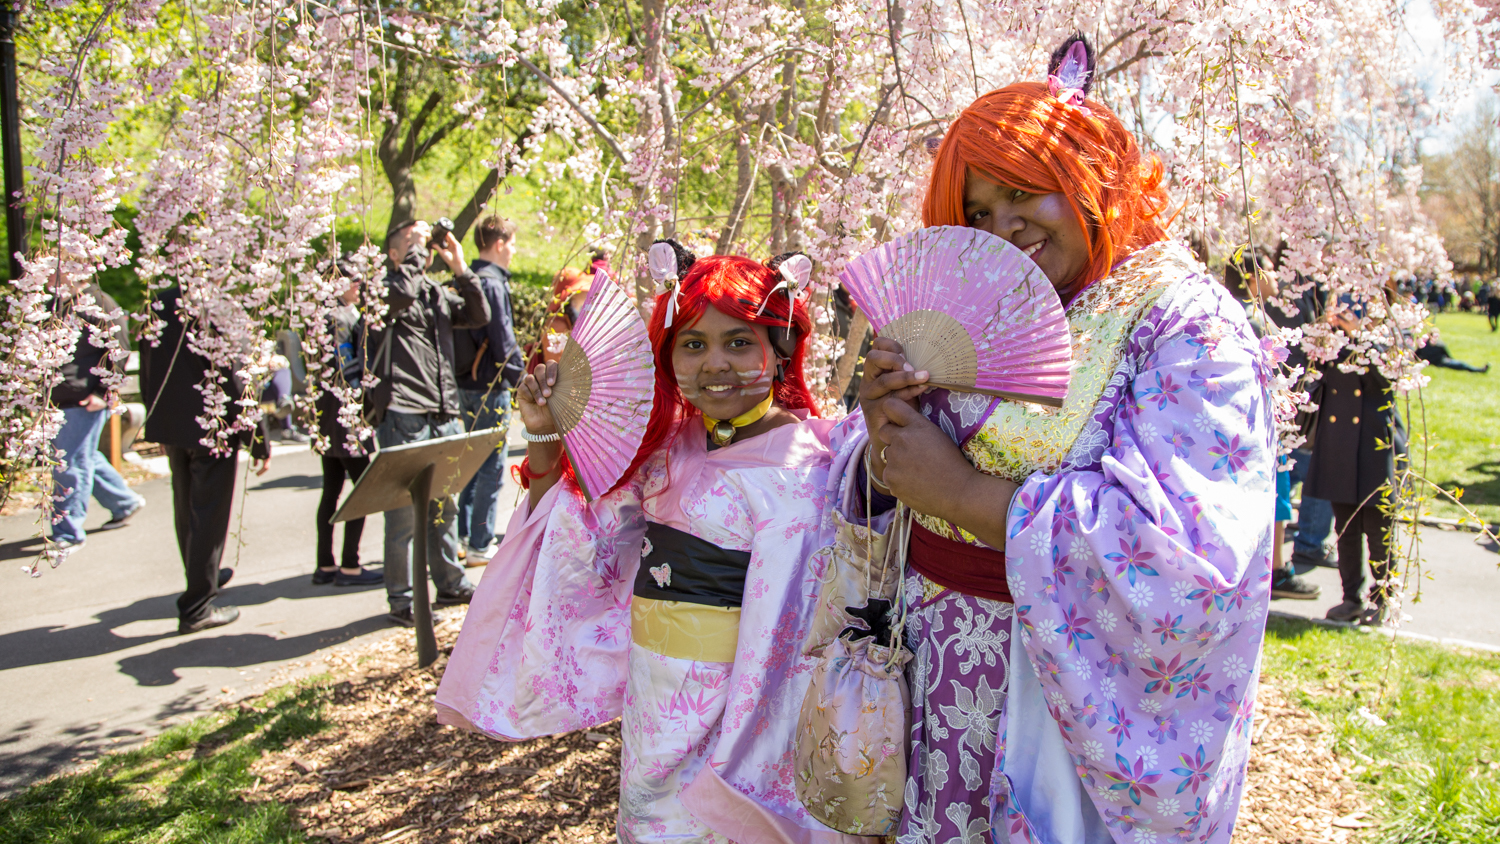 Gorgeous photos from the Cherry Blossom Festival